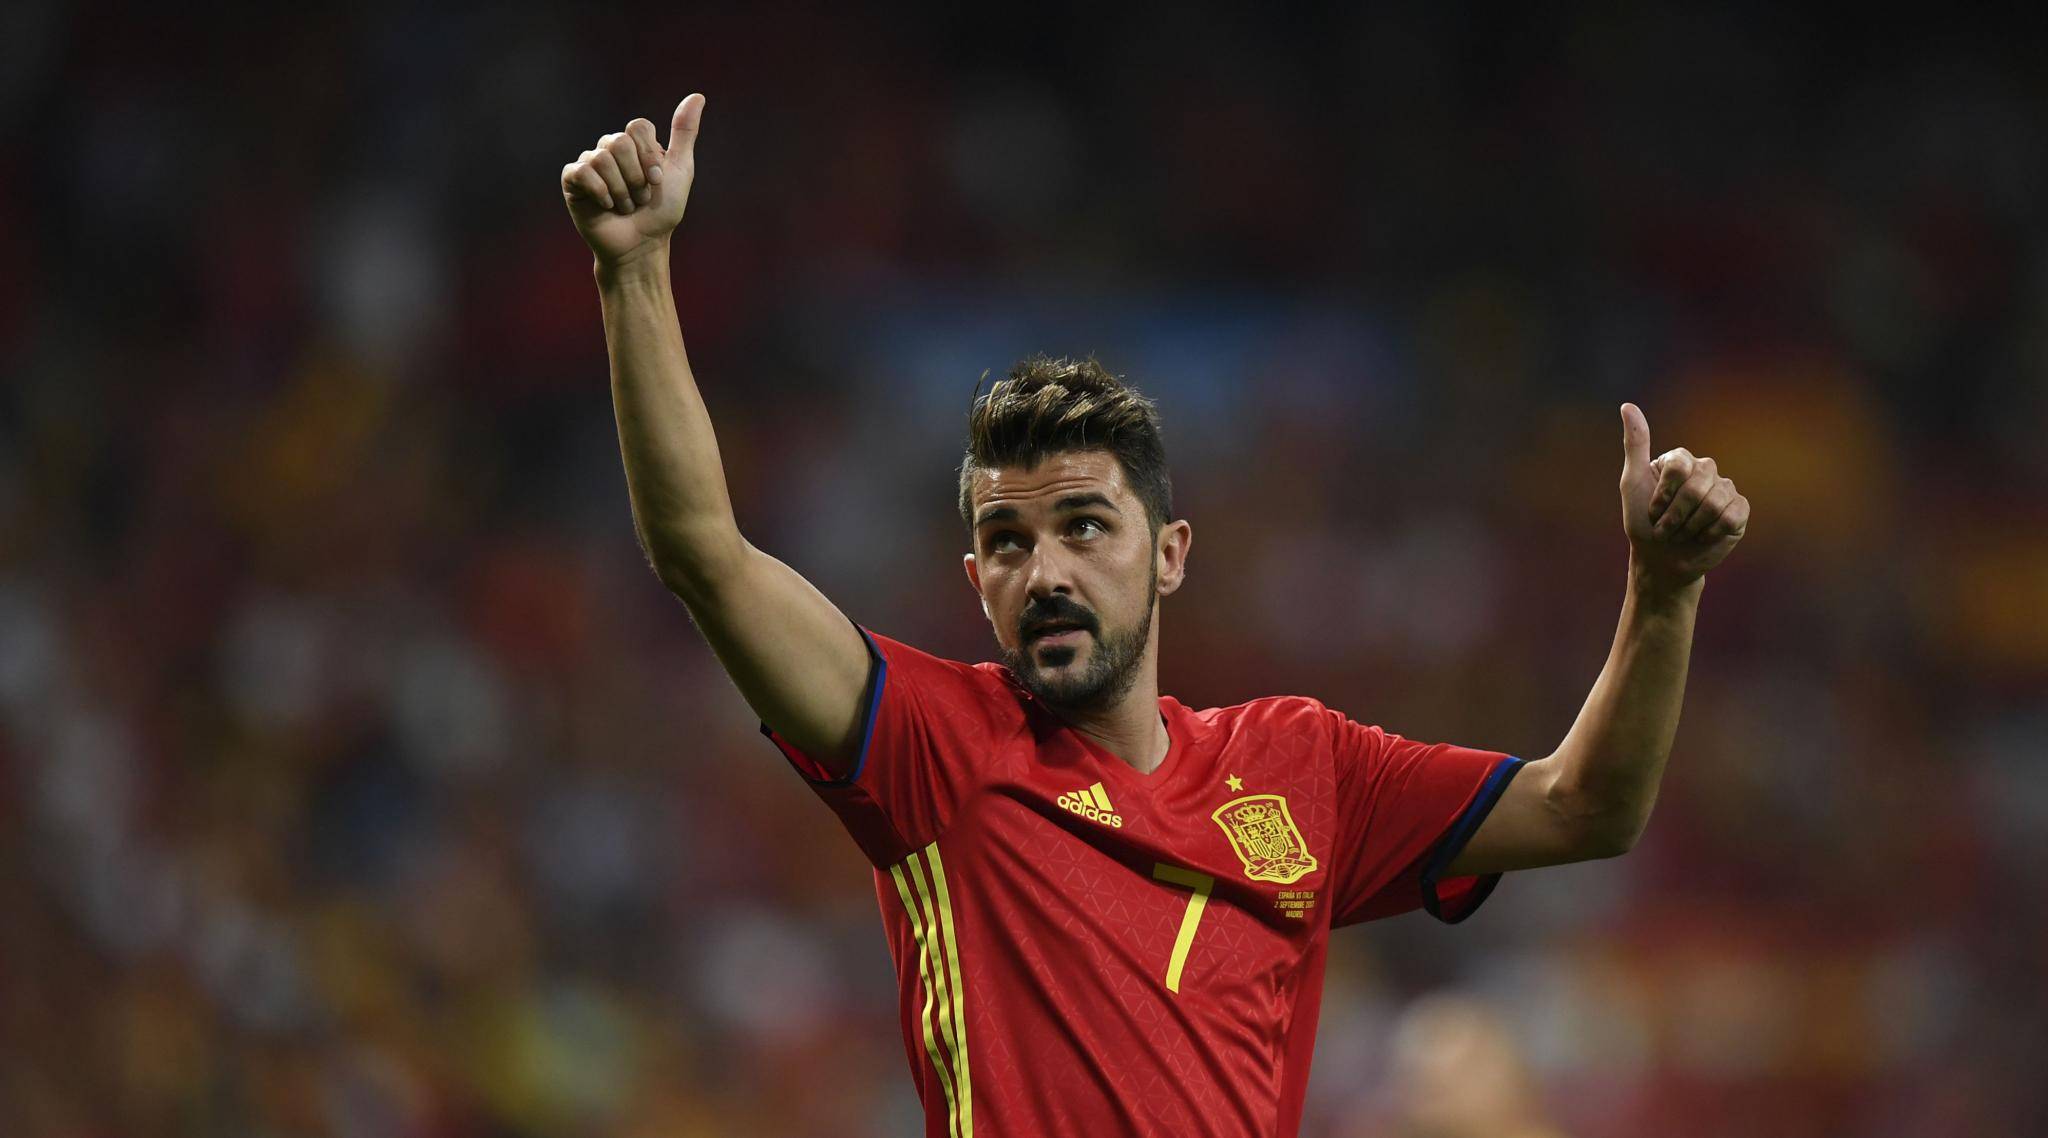 David Villa, Former Barcelona and Spain Striker, Announces Retirement From Football at End of Season